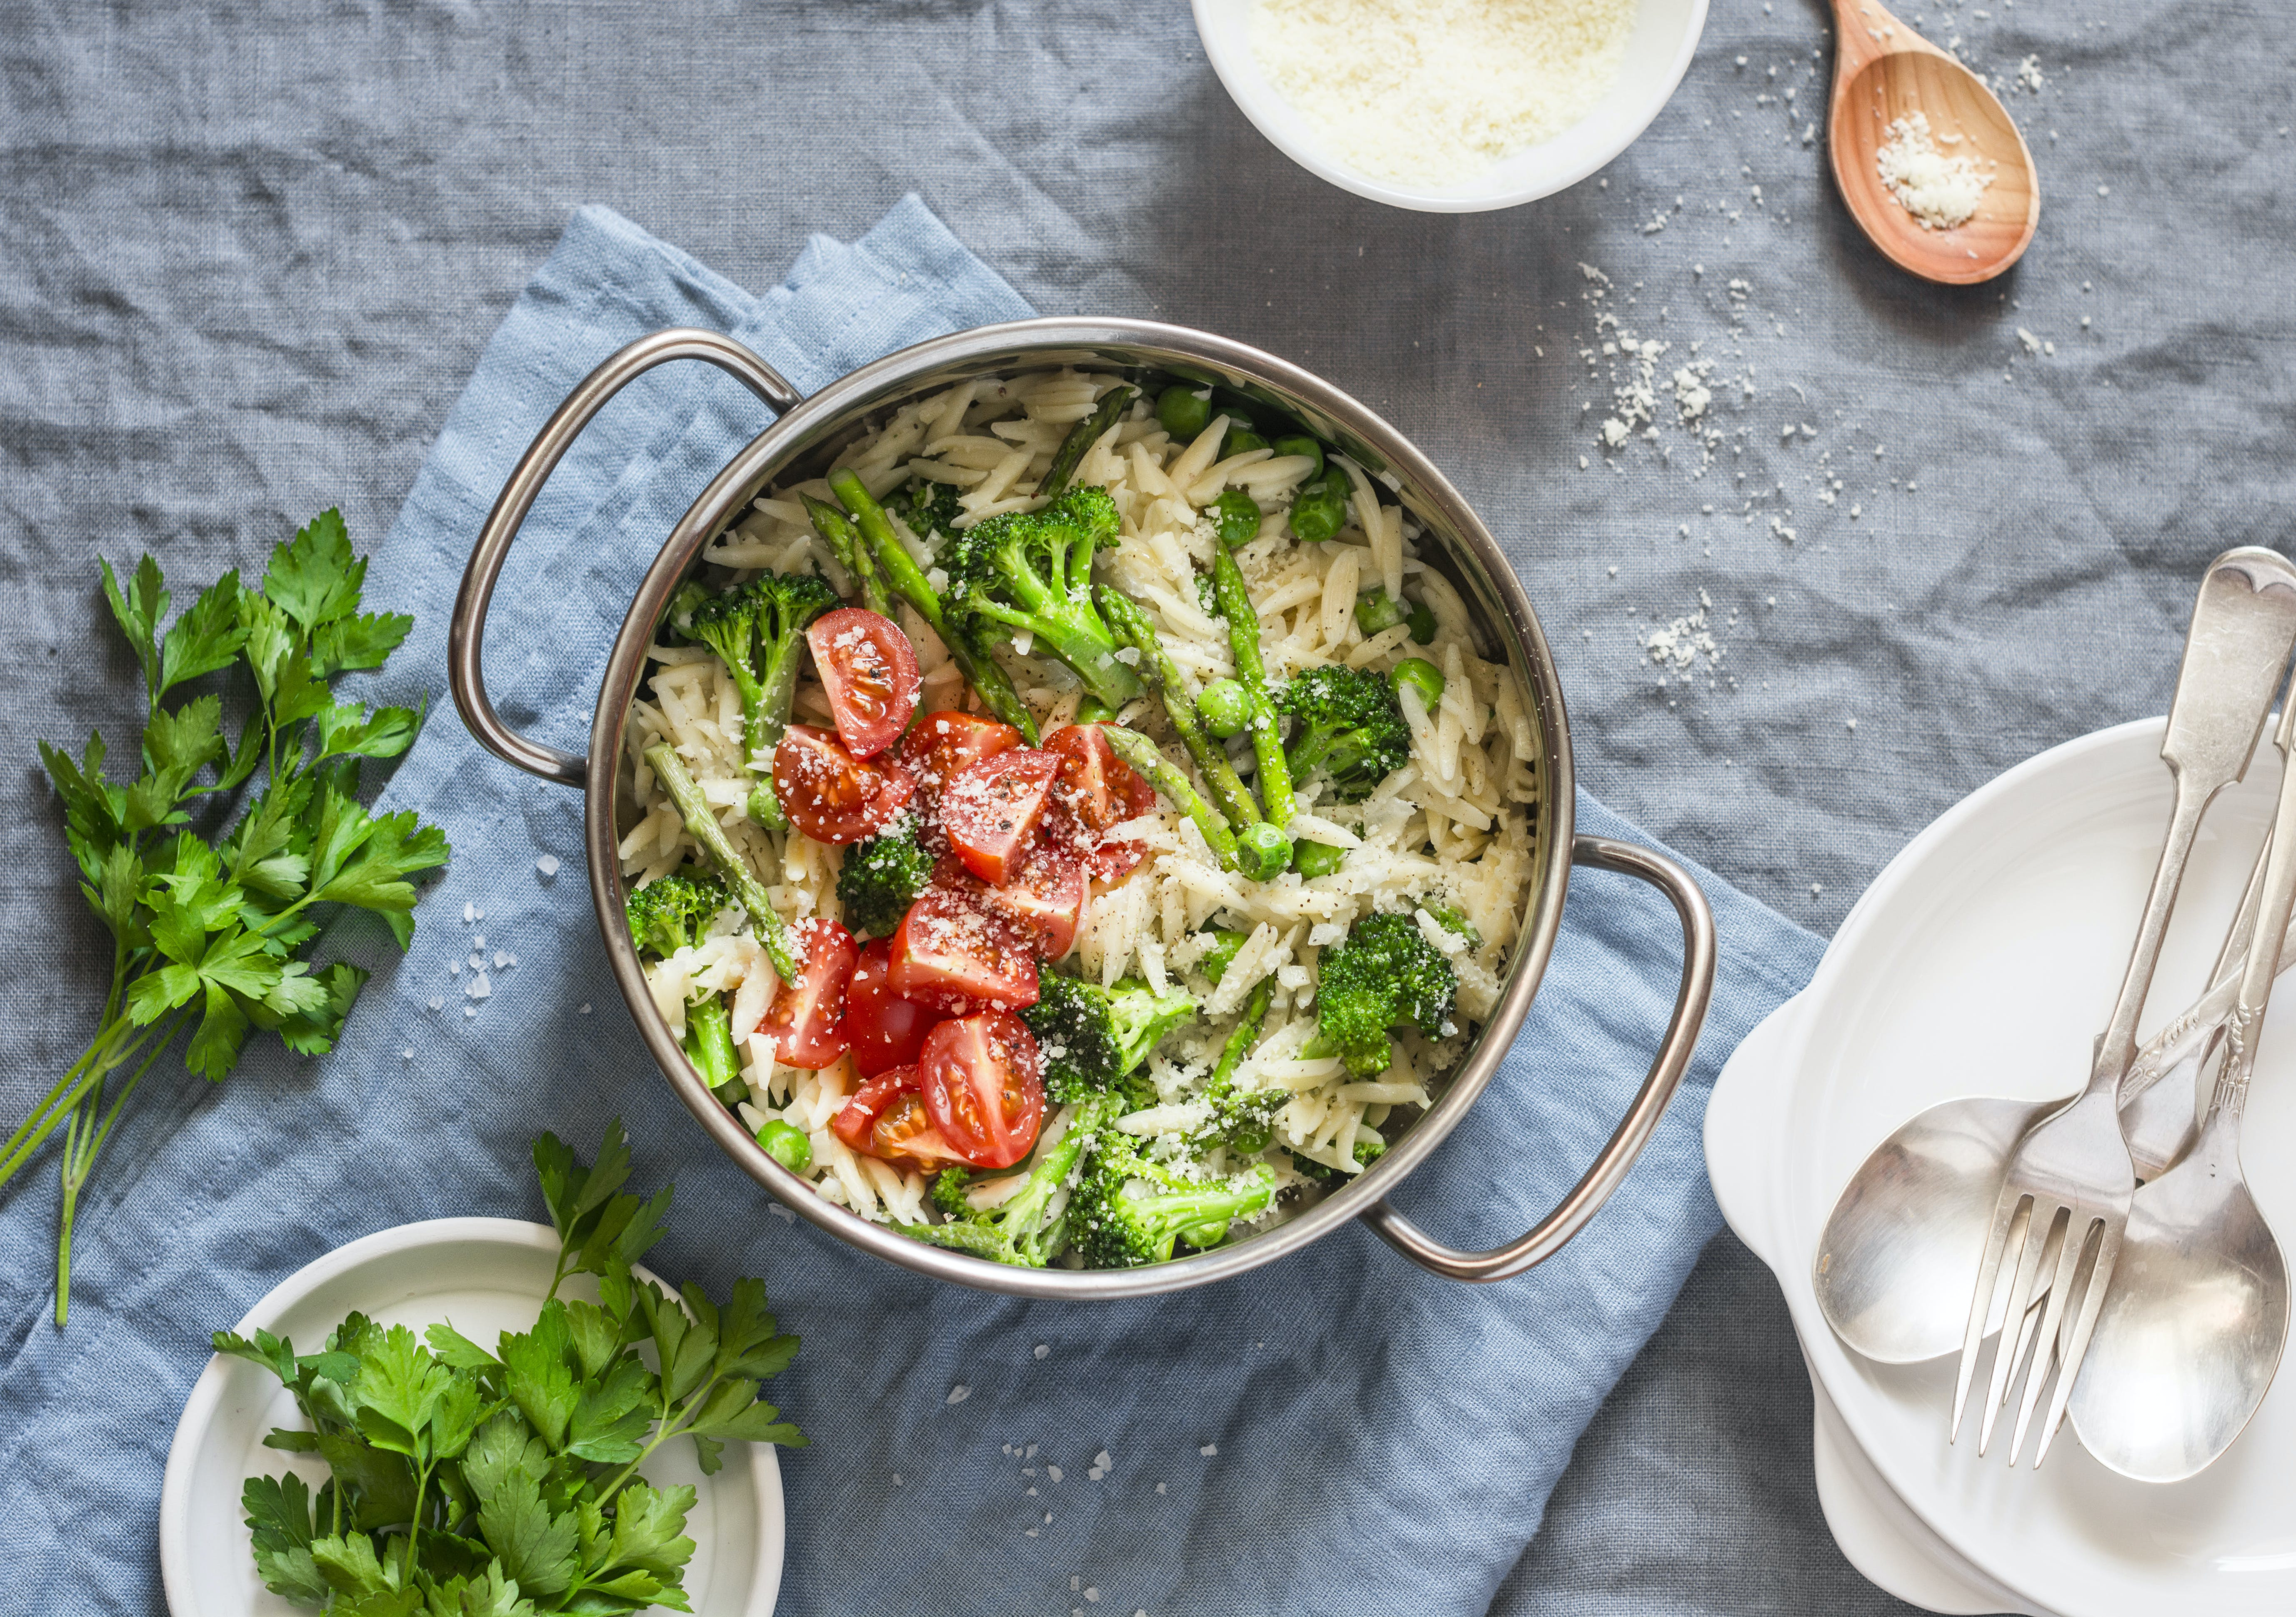 One Pan Orzo Pasta with Asparagus, Broccoli, Peas and Cream Sauce